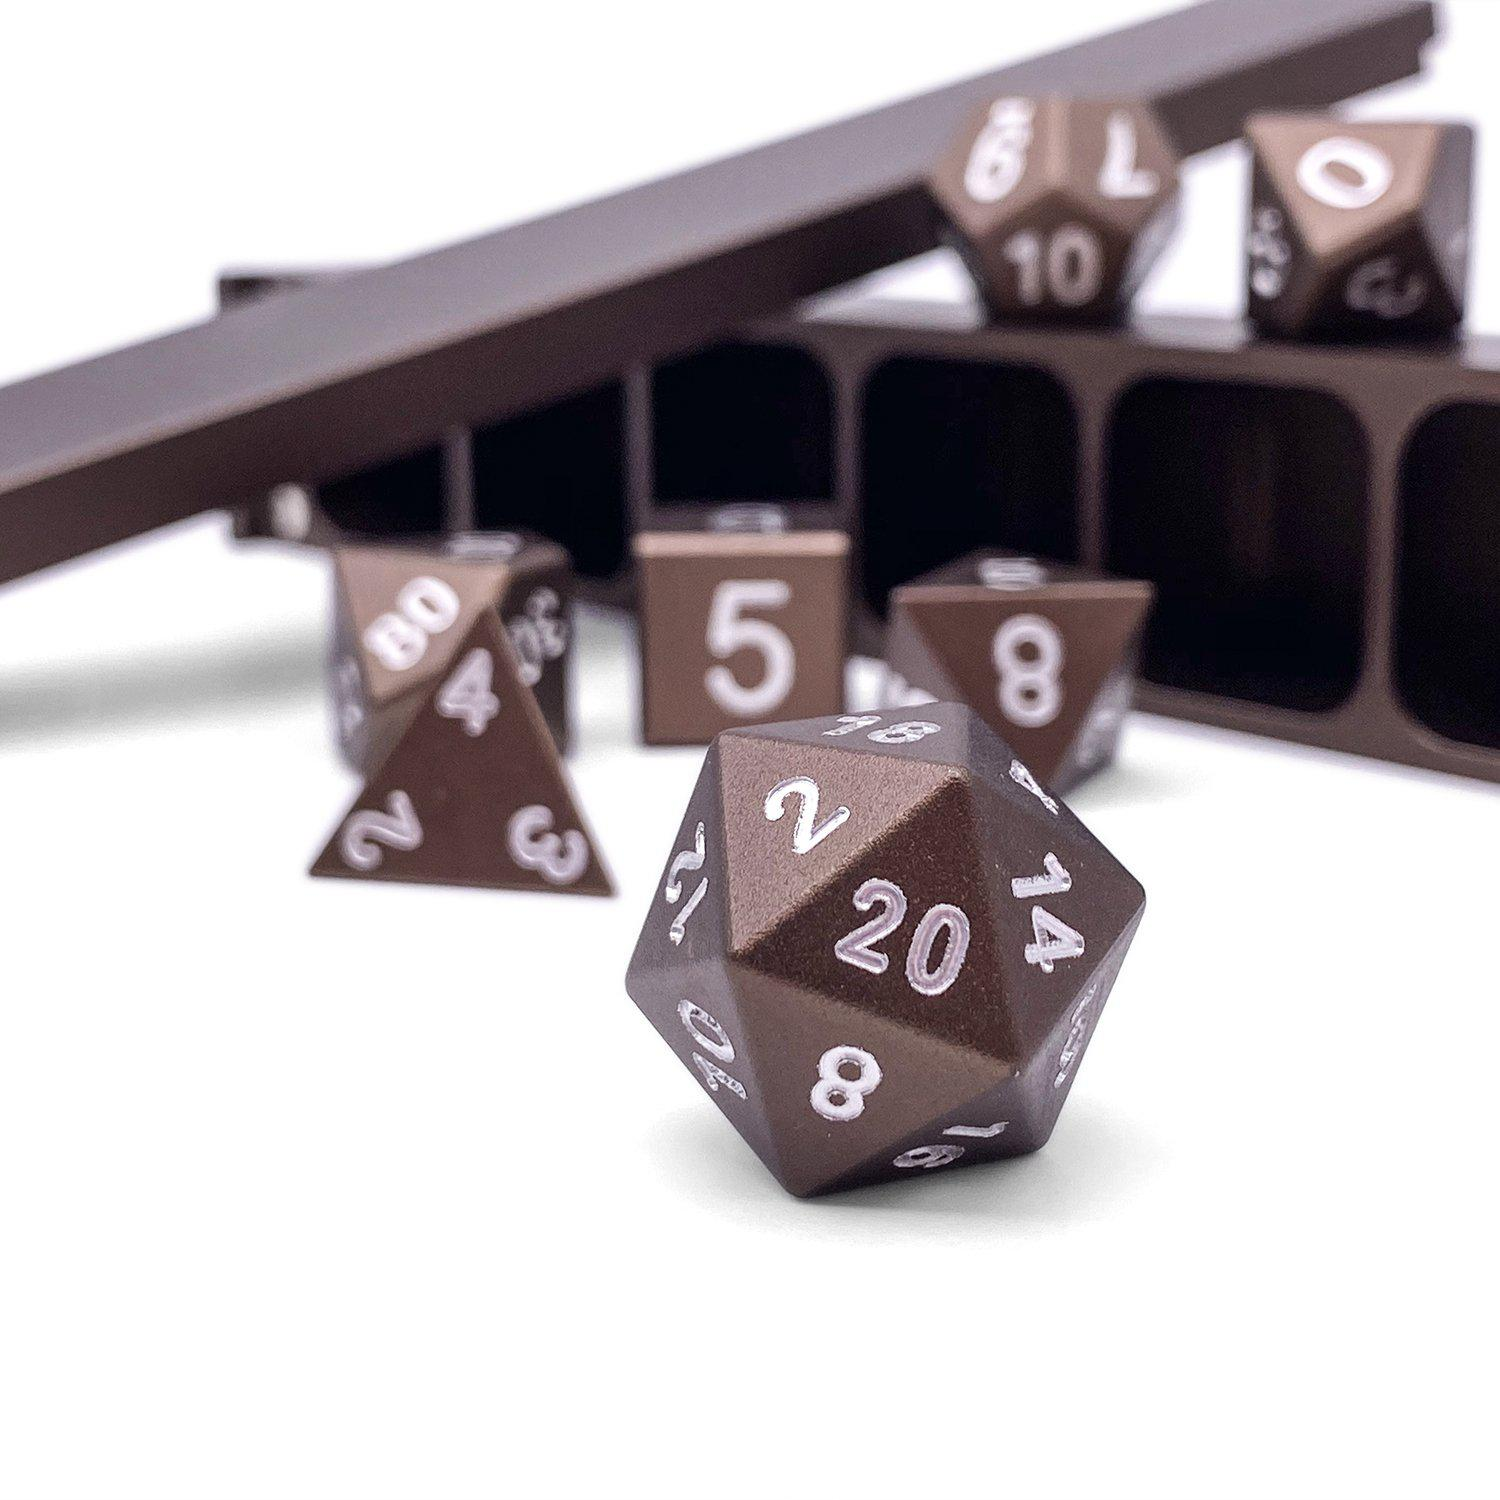 Leather Brown - Precision CNC Aluminum Dice Set with Dice Vault